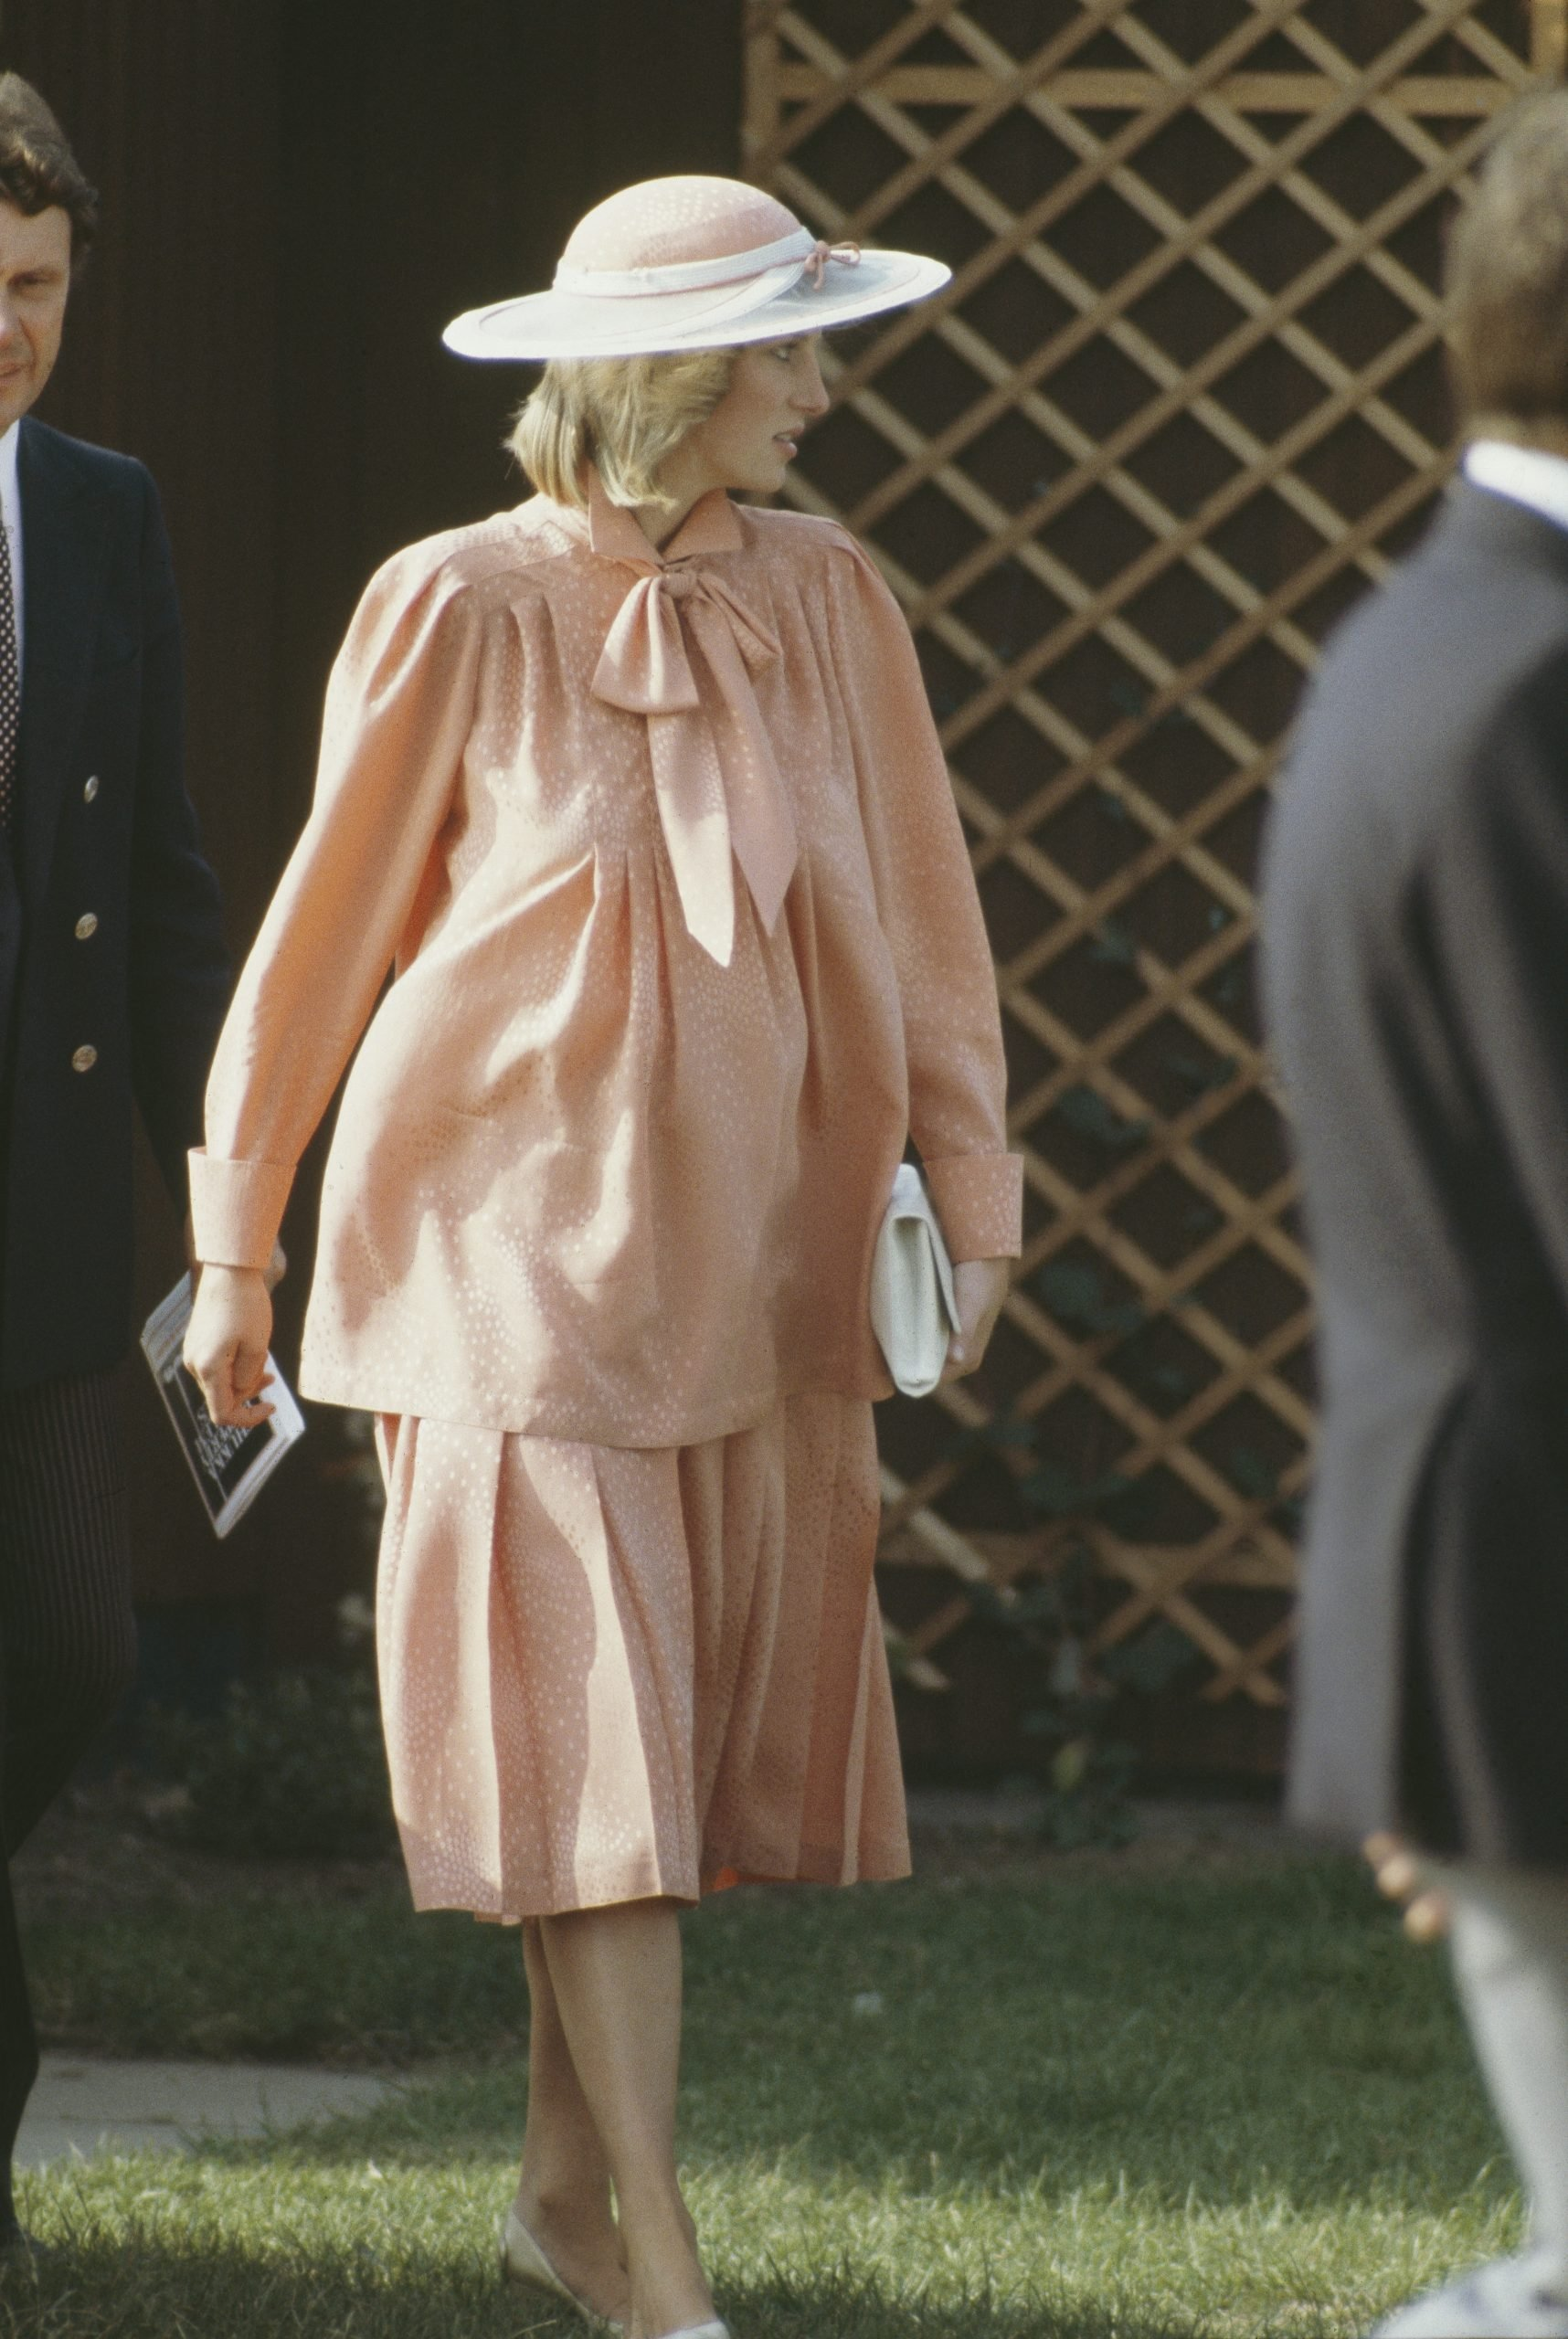 Diana, Princess of Wales at the Guards Polo Club in Windsor, June 1984. She is pregnant with Prince Harry, and wearing a Jan Van Velden maternity suit and hat by Frederick Fox.